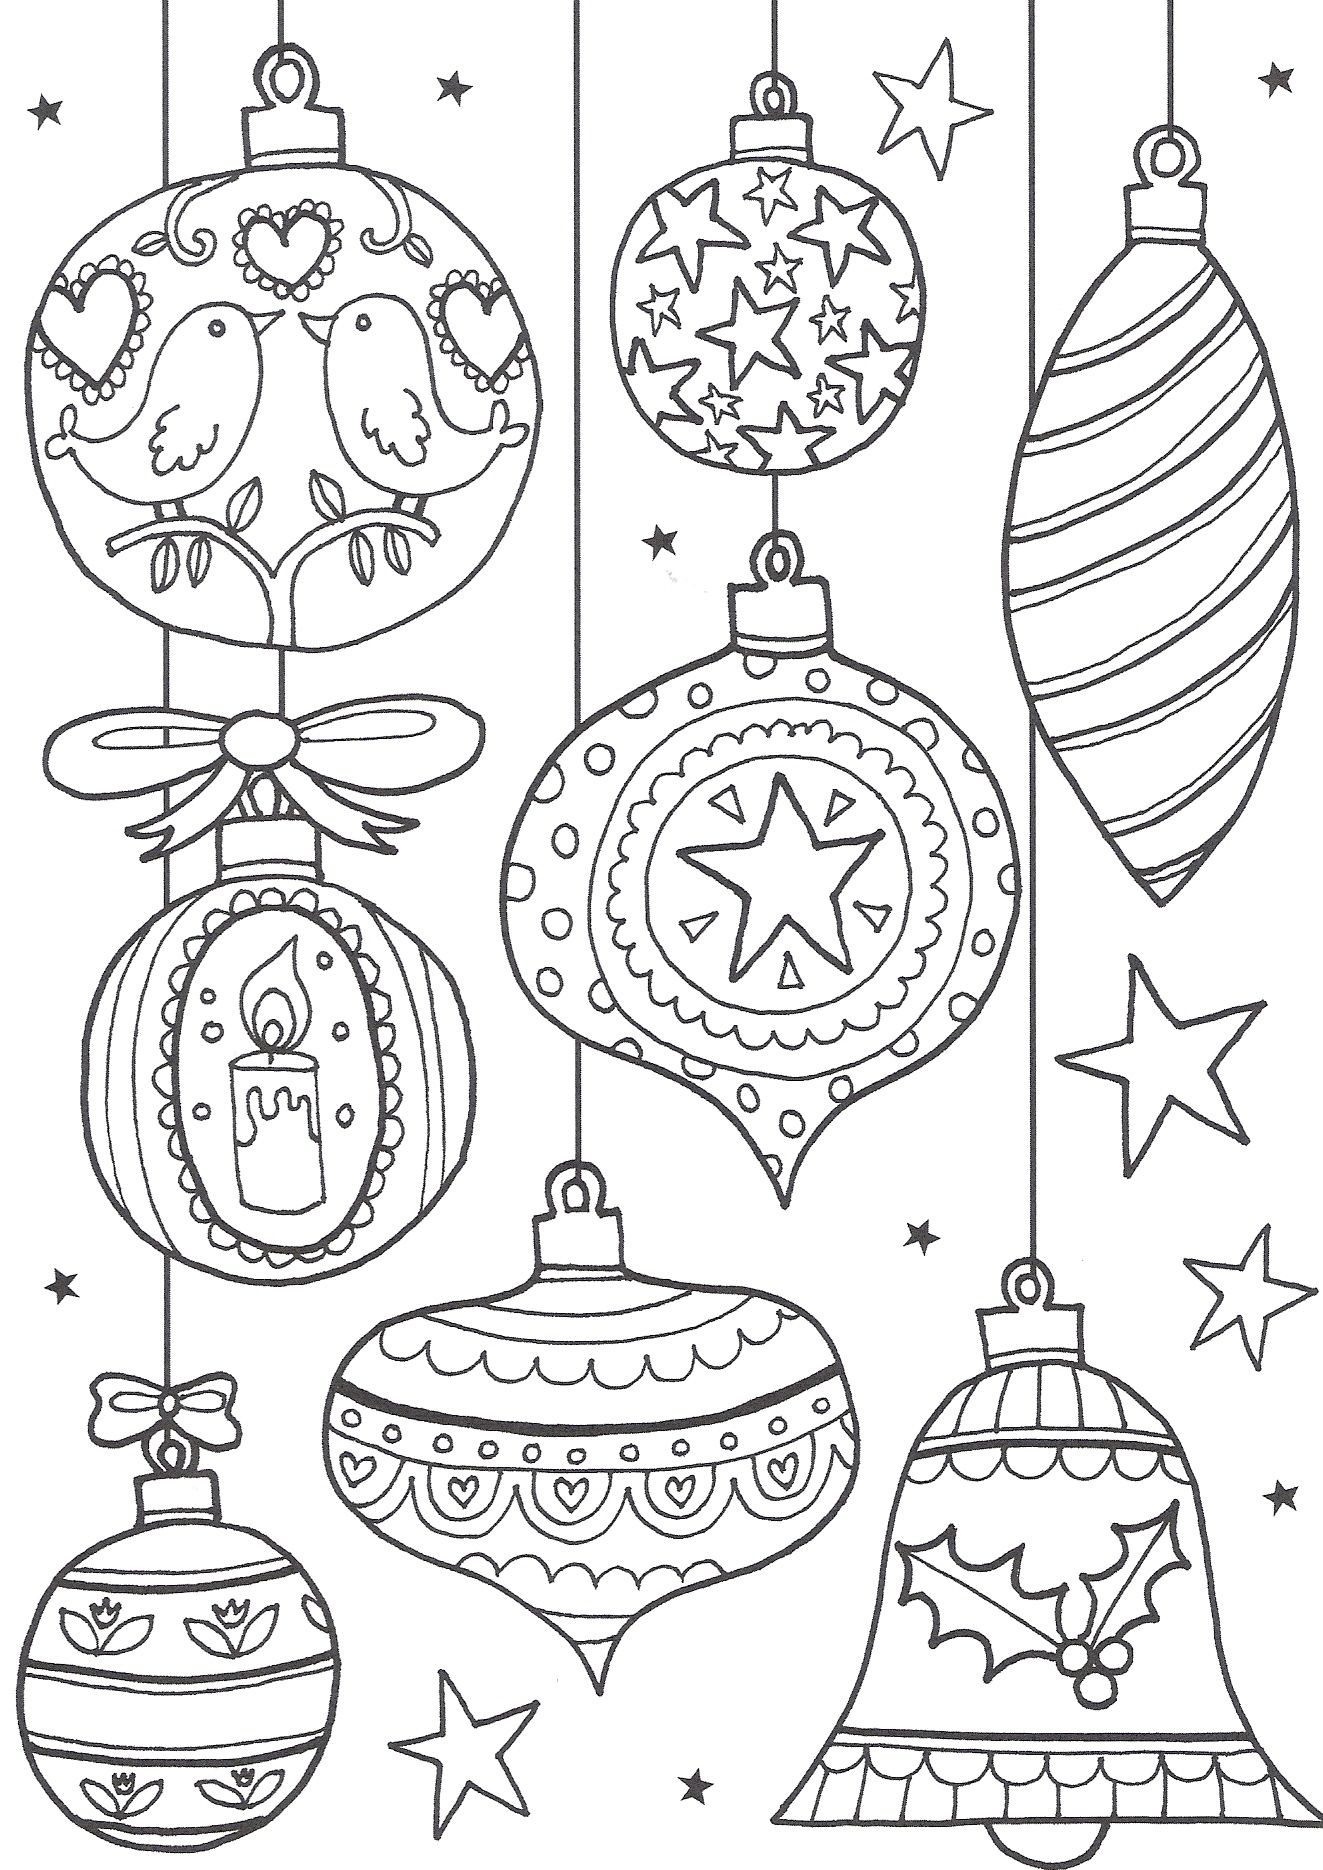 Christmas Village Coloring With Free Printable Pages Town Page